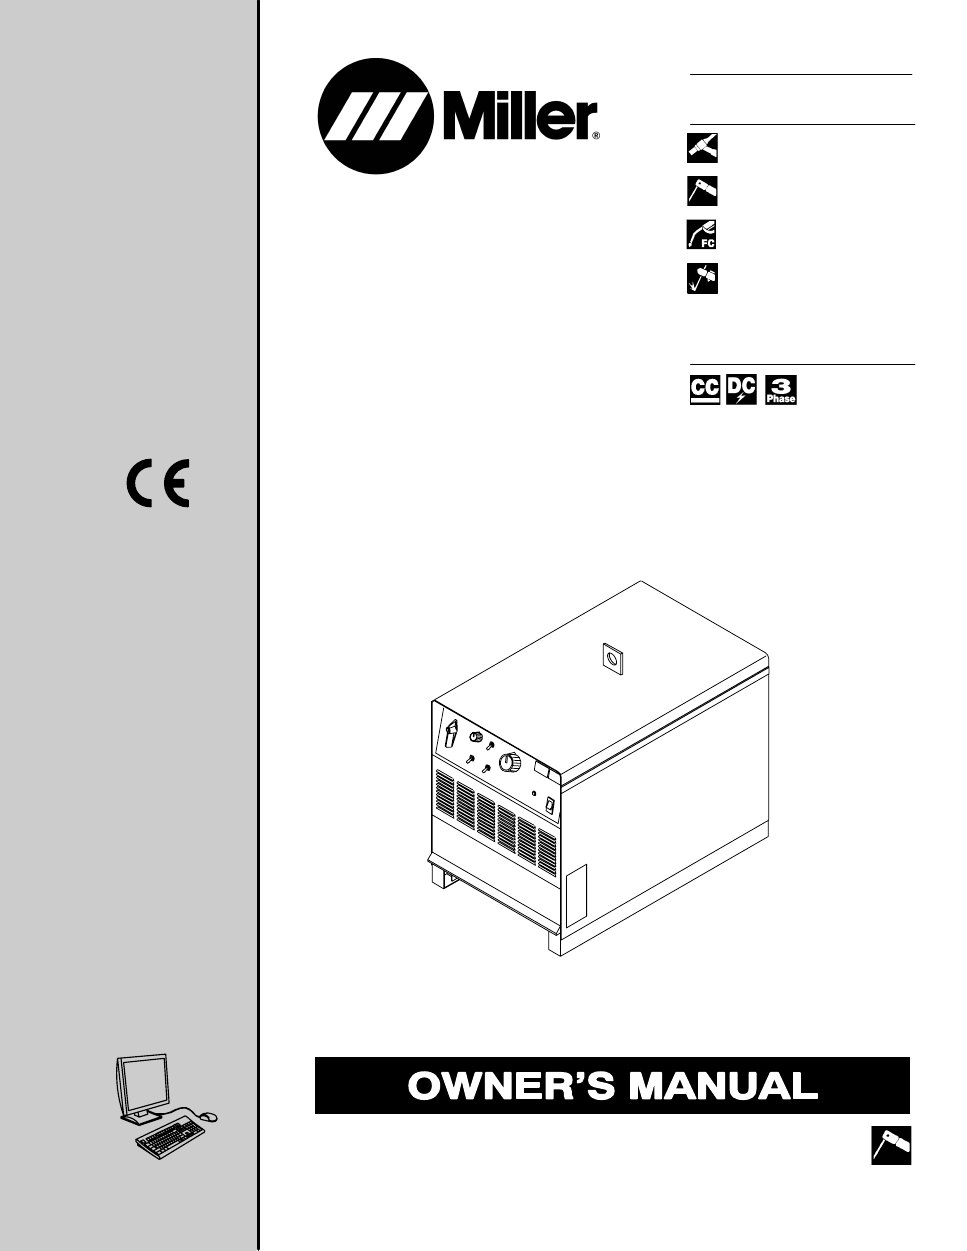 Miller electric users manual free download pages png 967x1251 Miller  thunderbolt welder parts list